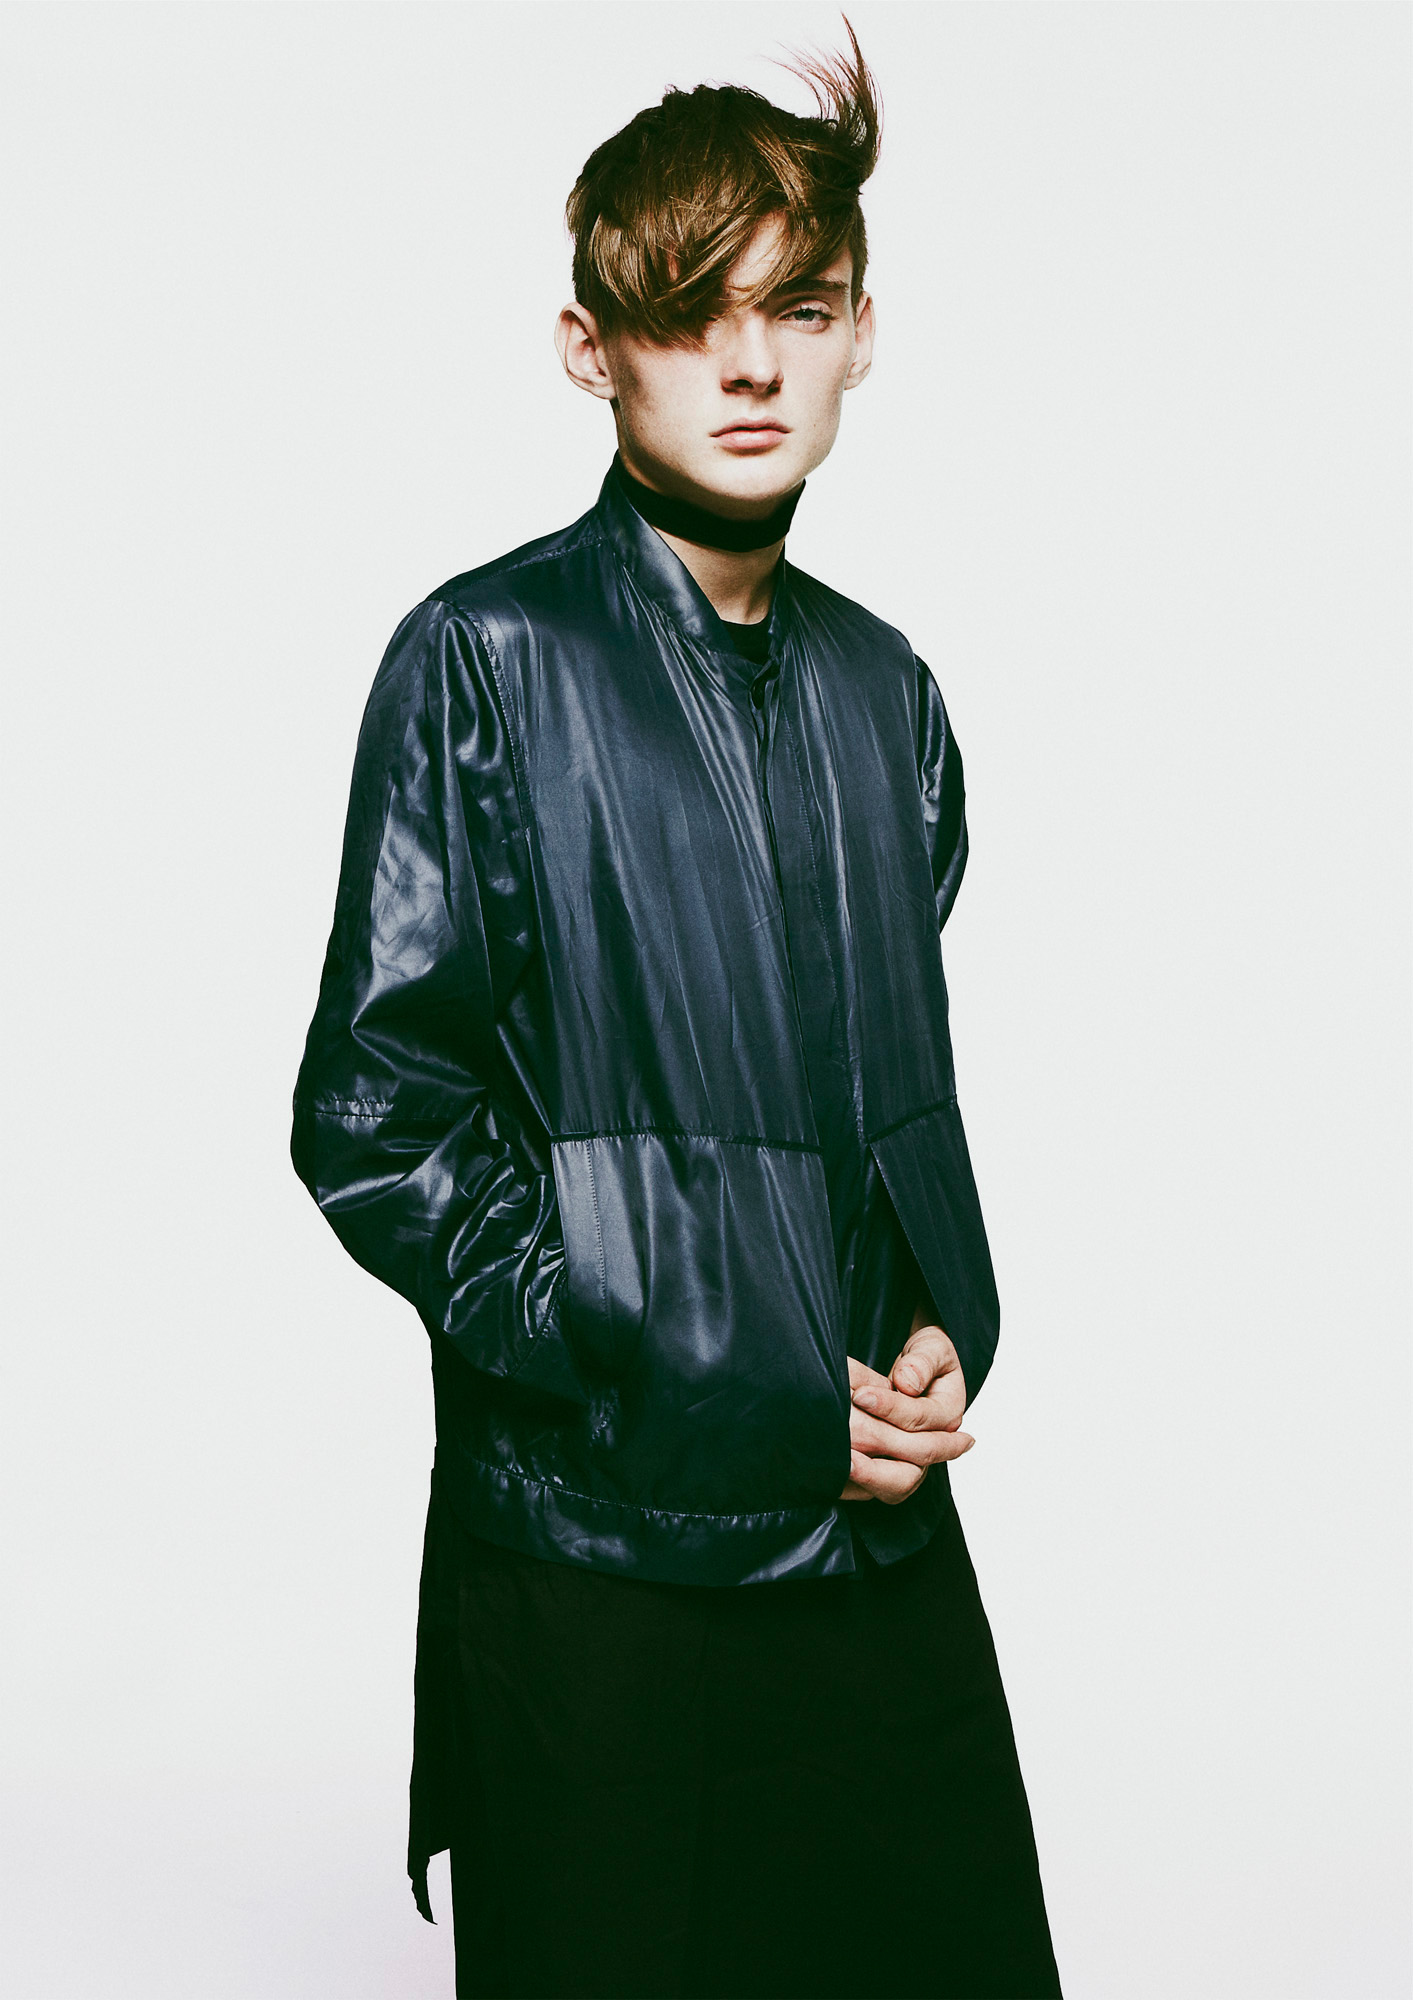 Wool choker, wet look nylon bomber jacket, cotton t-shirt undergarment and cotton trousers by Craig Green